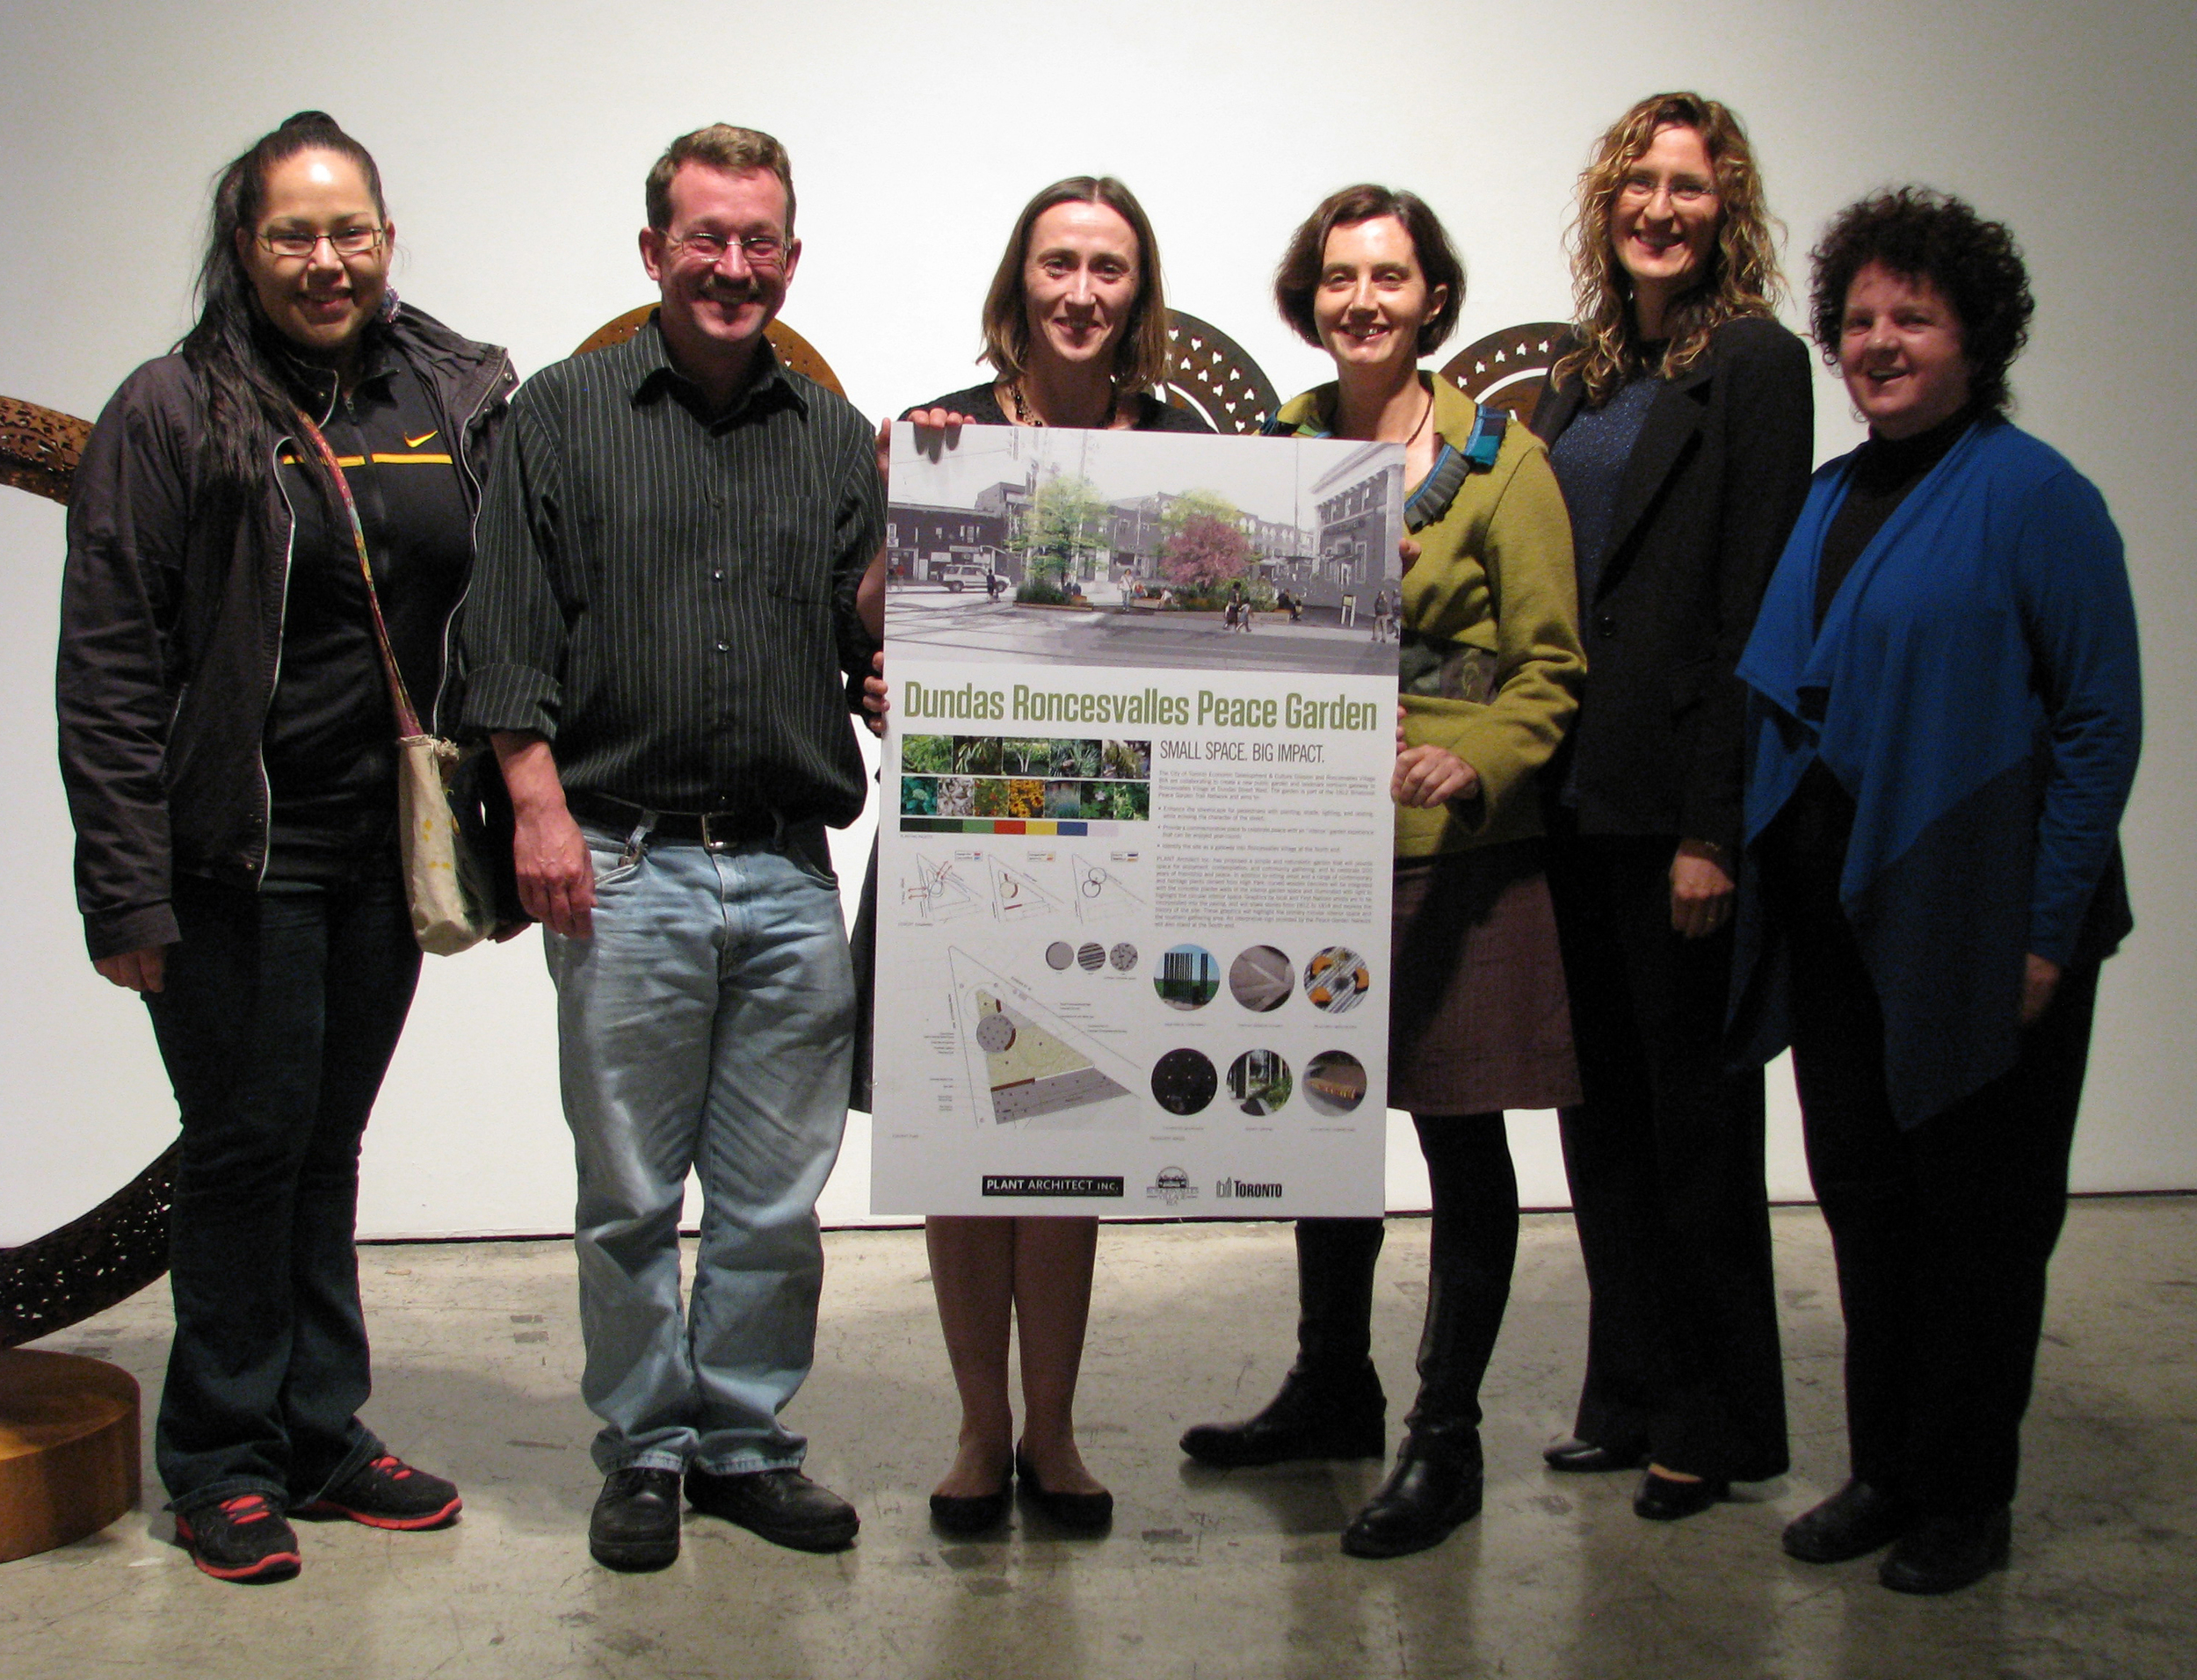 Landscape Design Public Meeting - October 2013